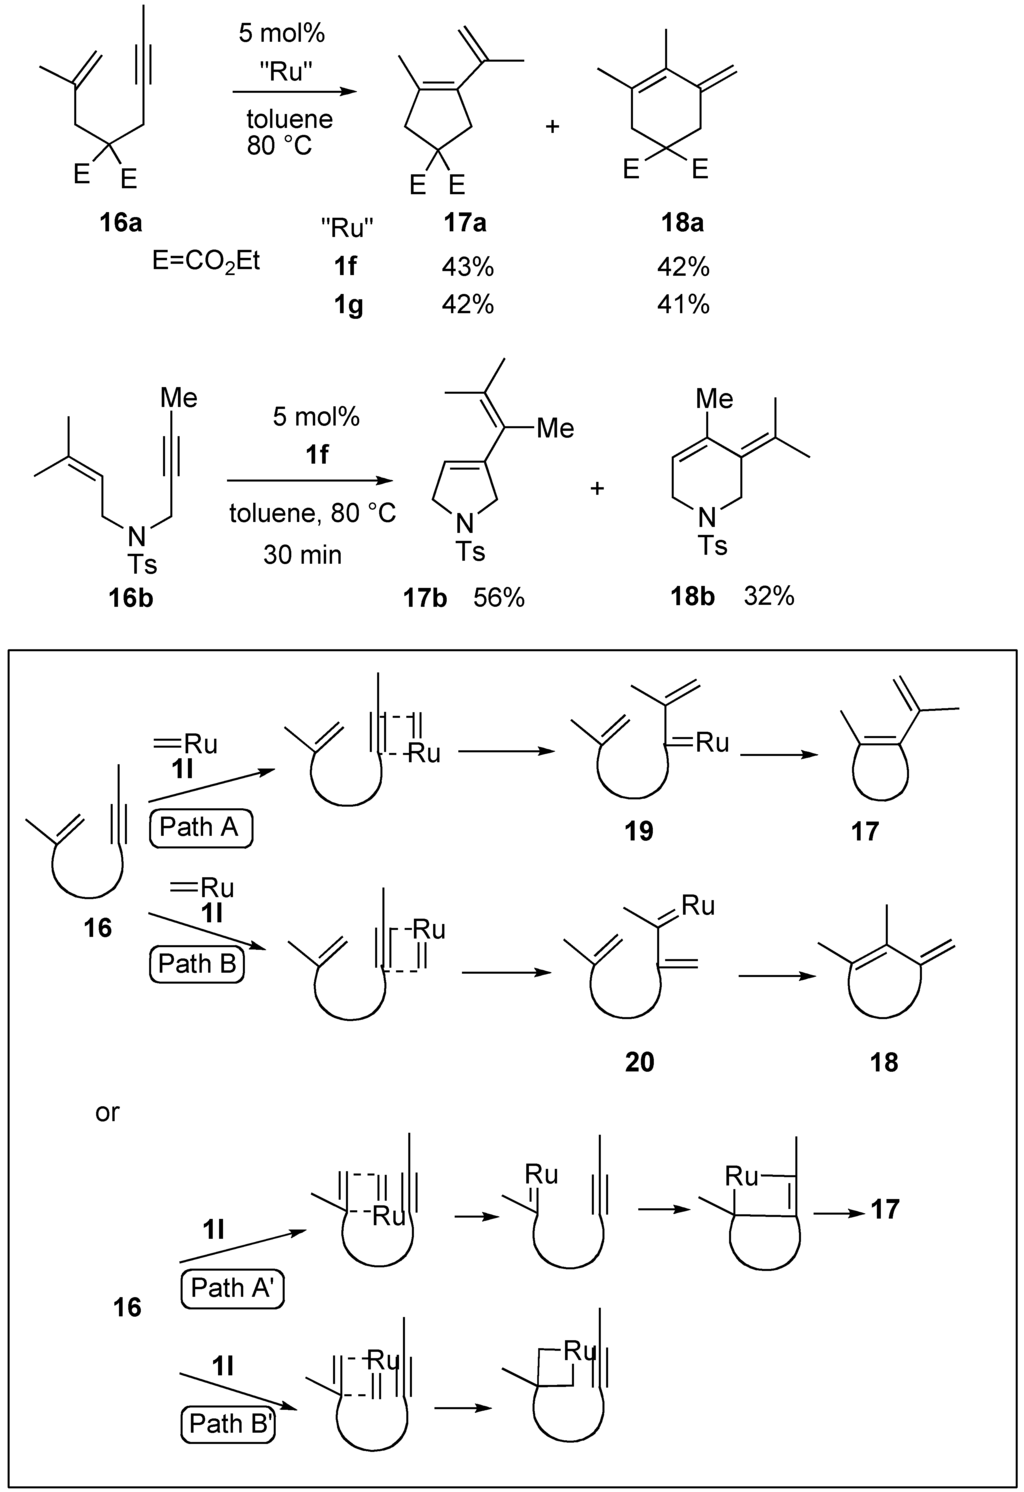 enyne metathesis catalyzed by ruthenium carbene complexes Ene-yne cross-metathesis with ruthenium carbene catalysts cross-metathesis enyne fatty acid esters ruthenium fischer tungsten carbene complexes were used by katz [21], and later mori [22,23] utilized chromium alkoxycarbene to.